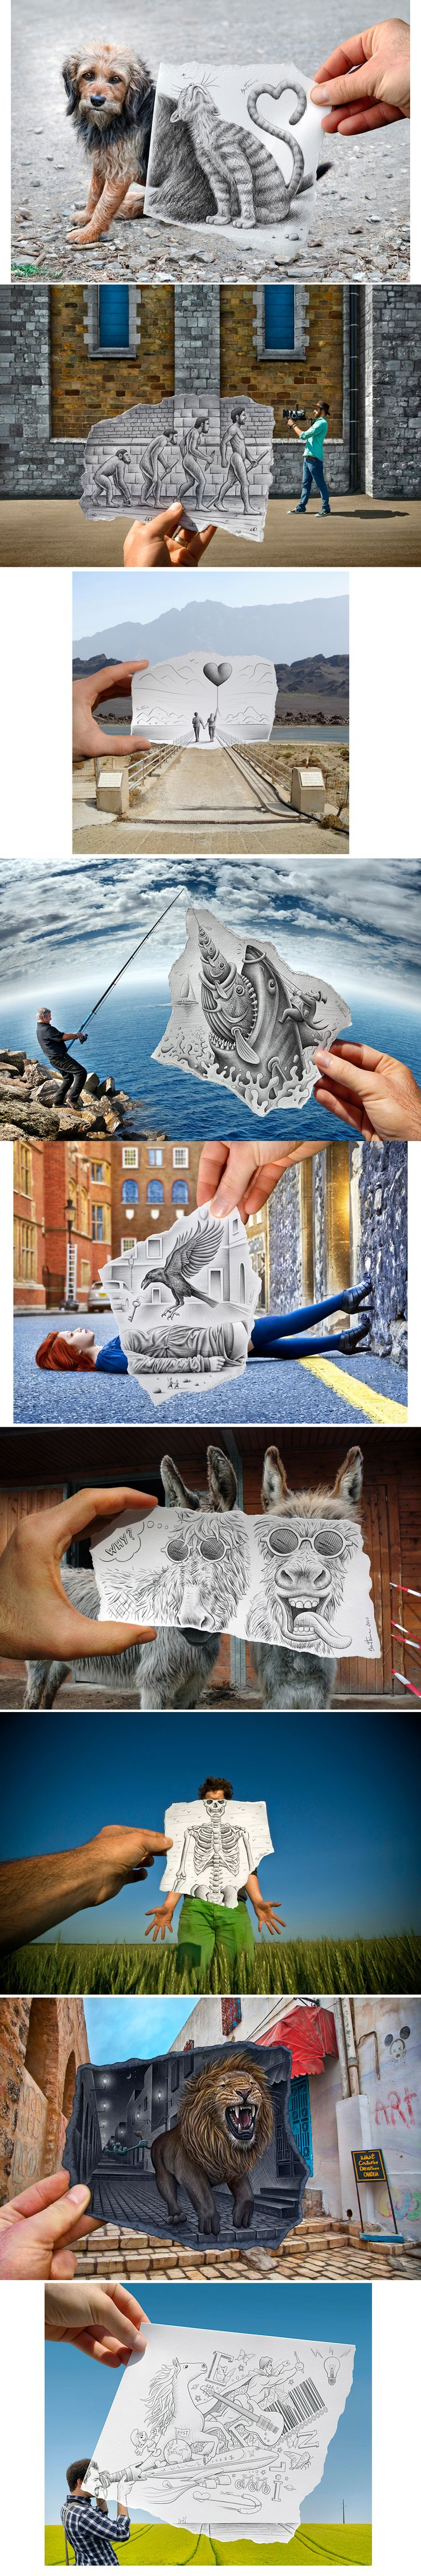 Fabulous!   by Ben Heine